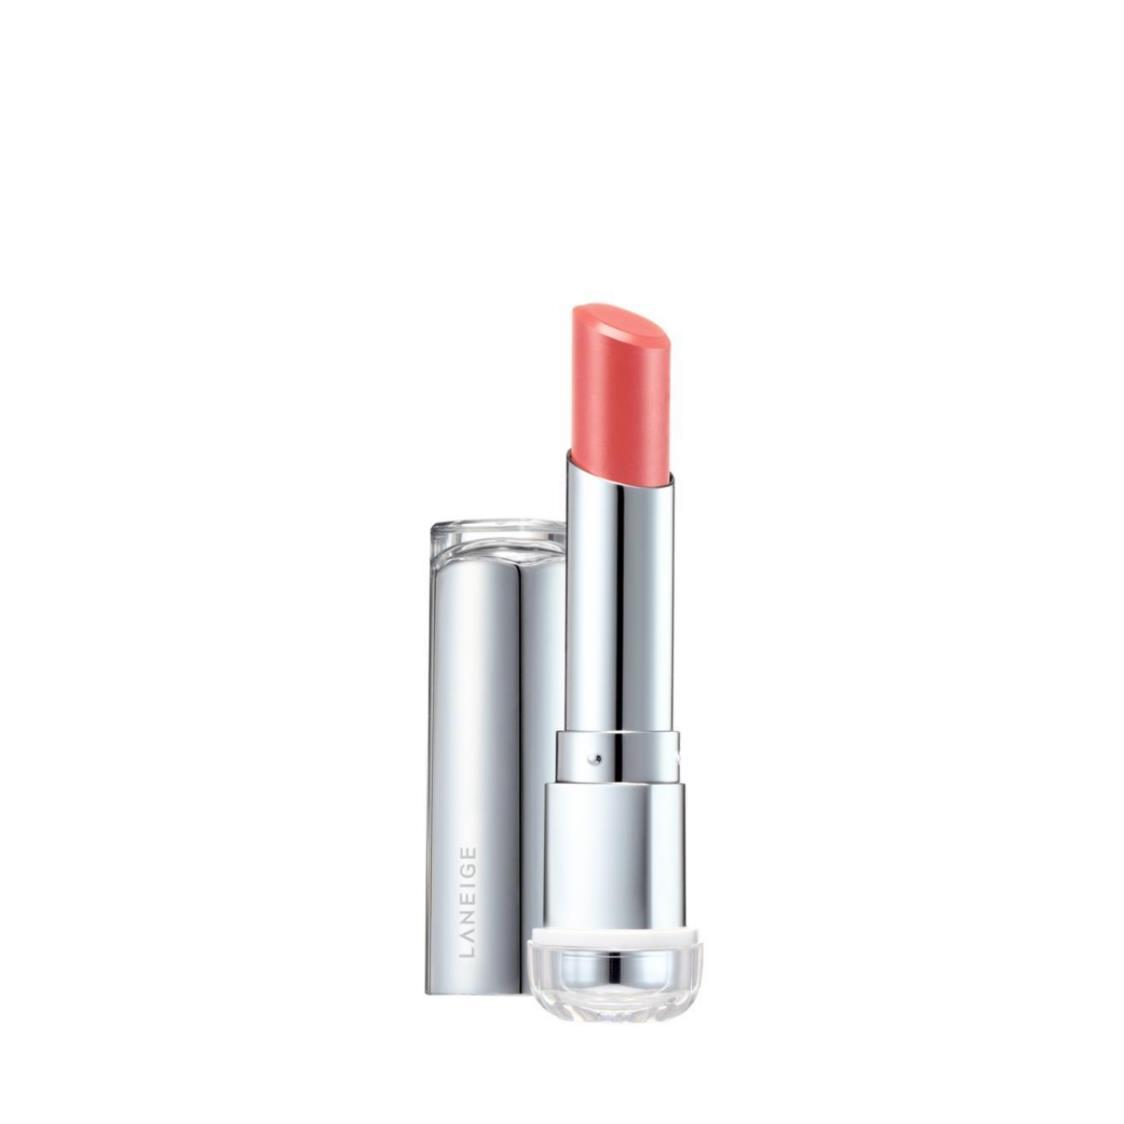 Serum Intense Lipstick